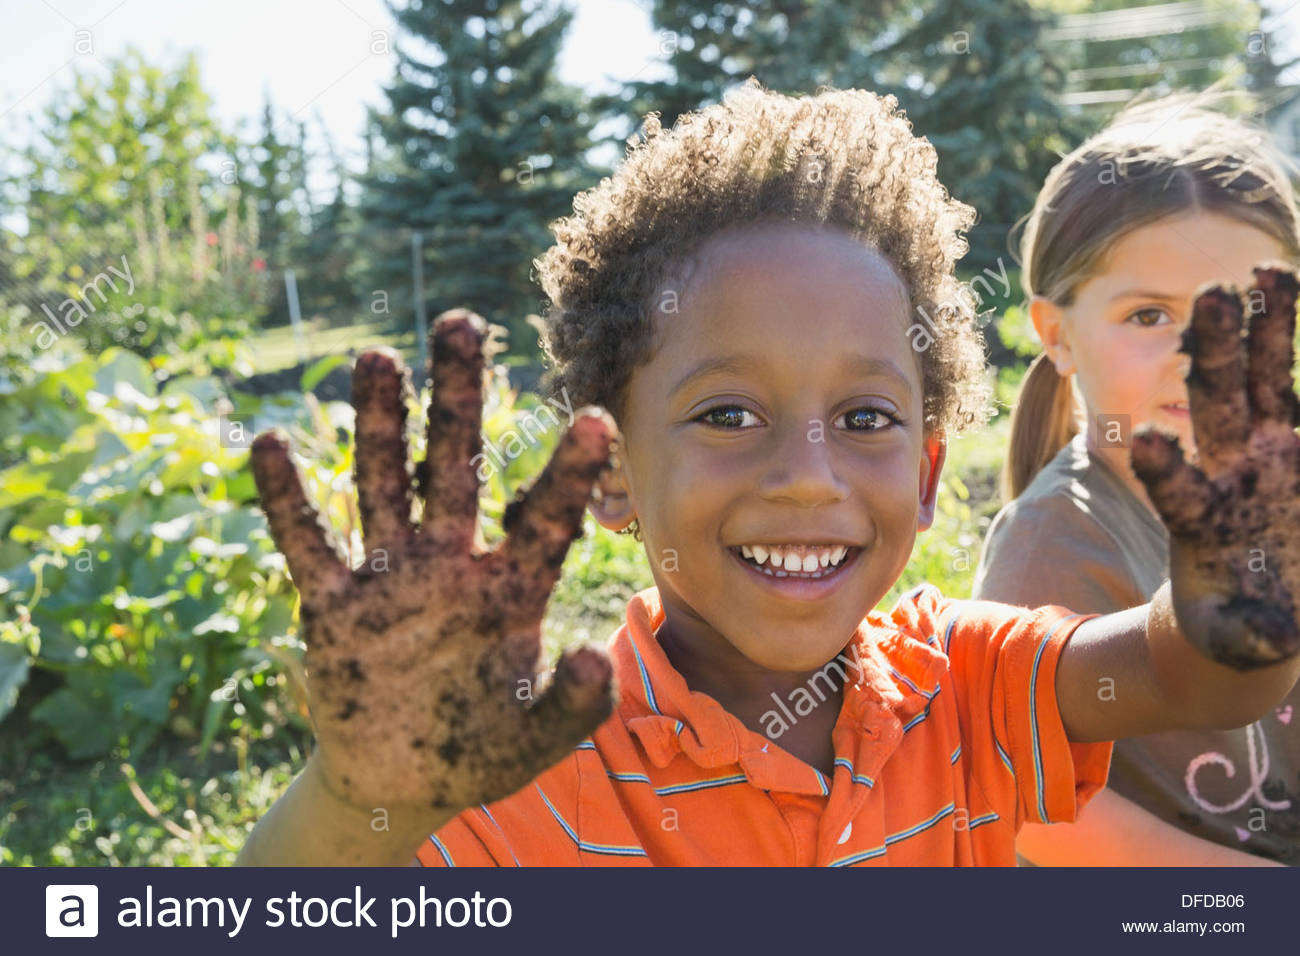 Portrait of boy showing hands covered in dirt - Stock Image